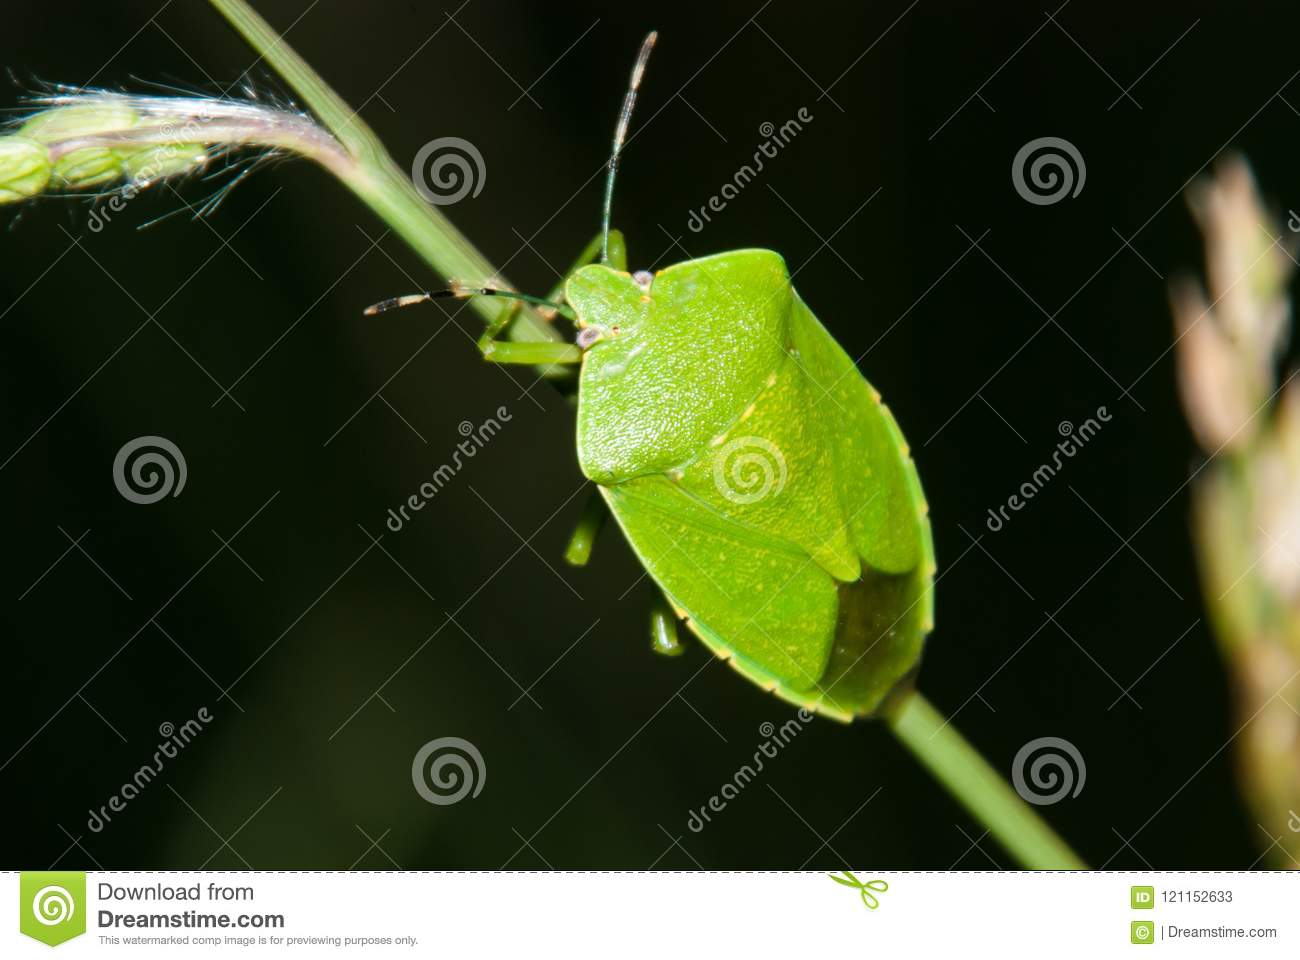 Groen stink Insect